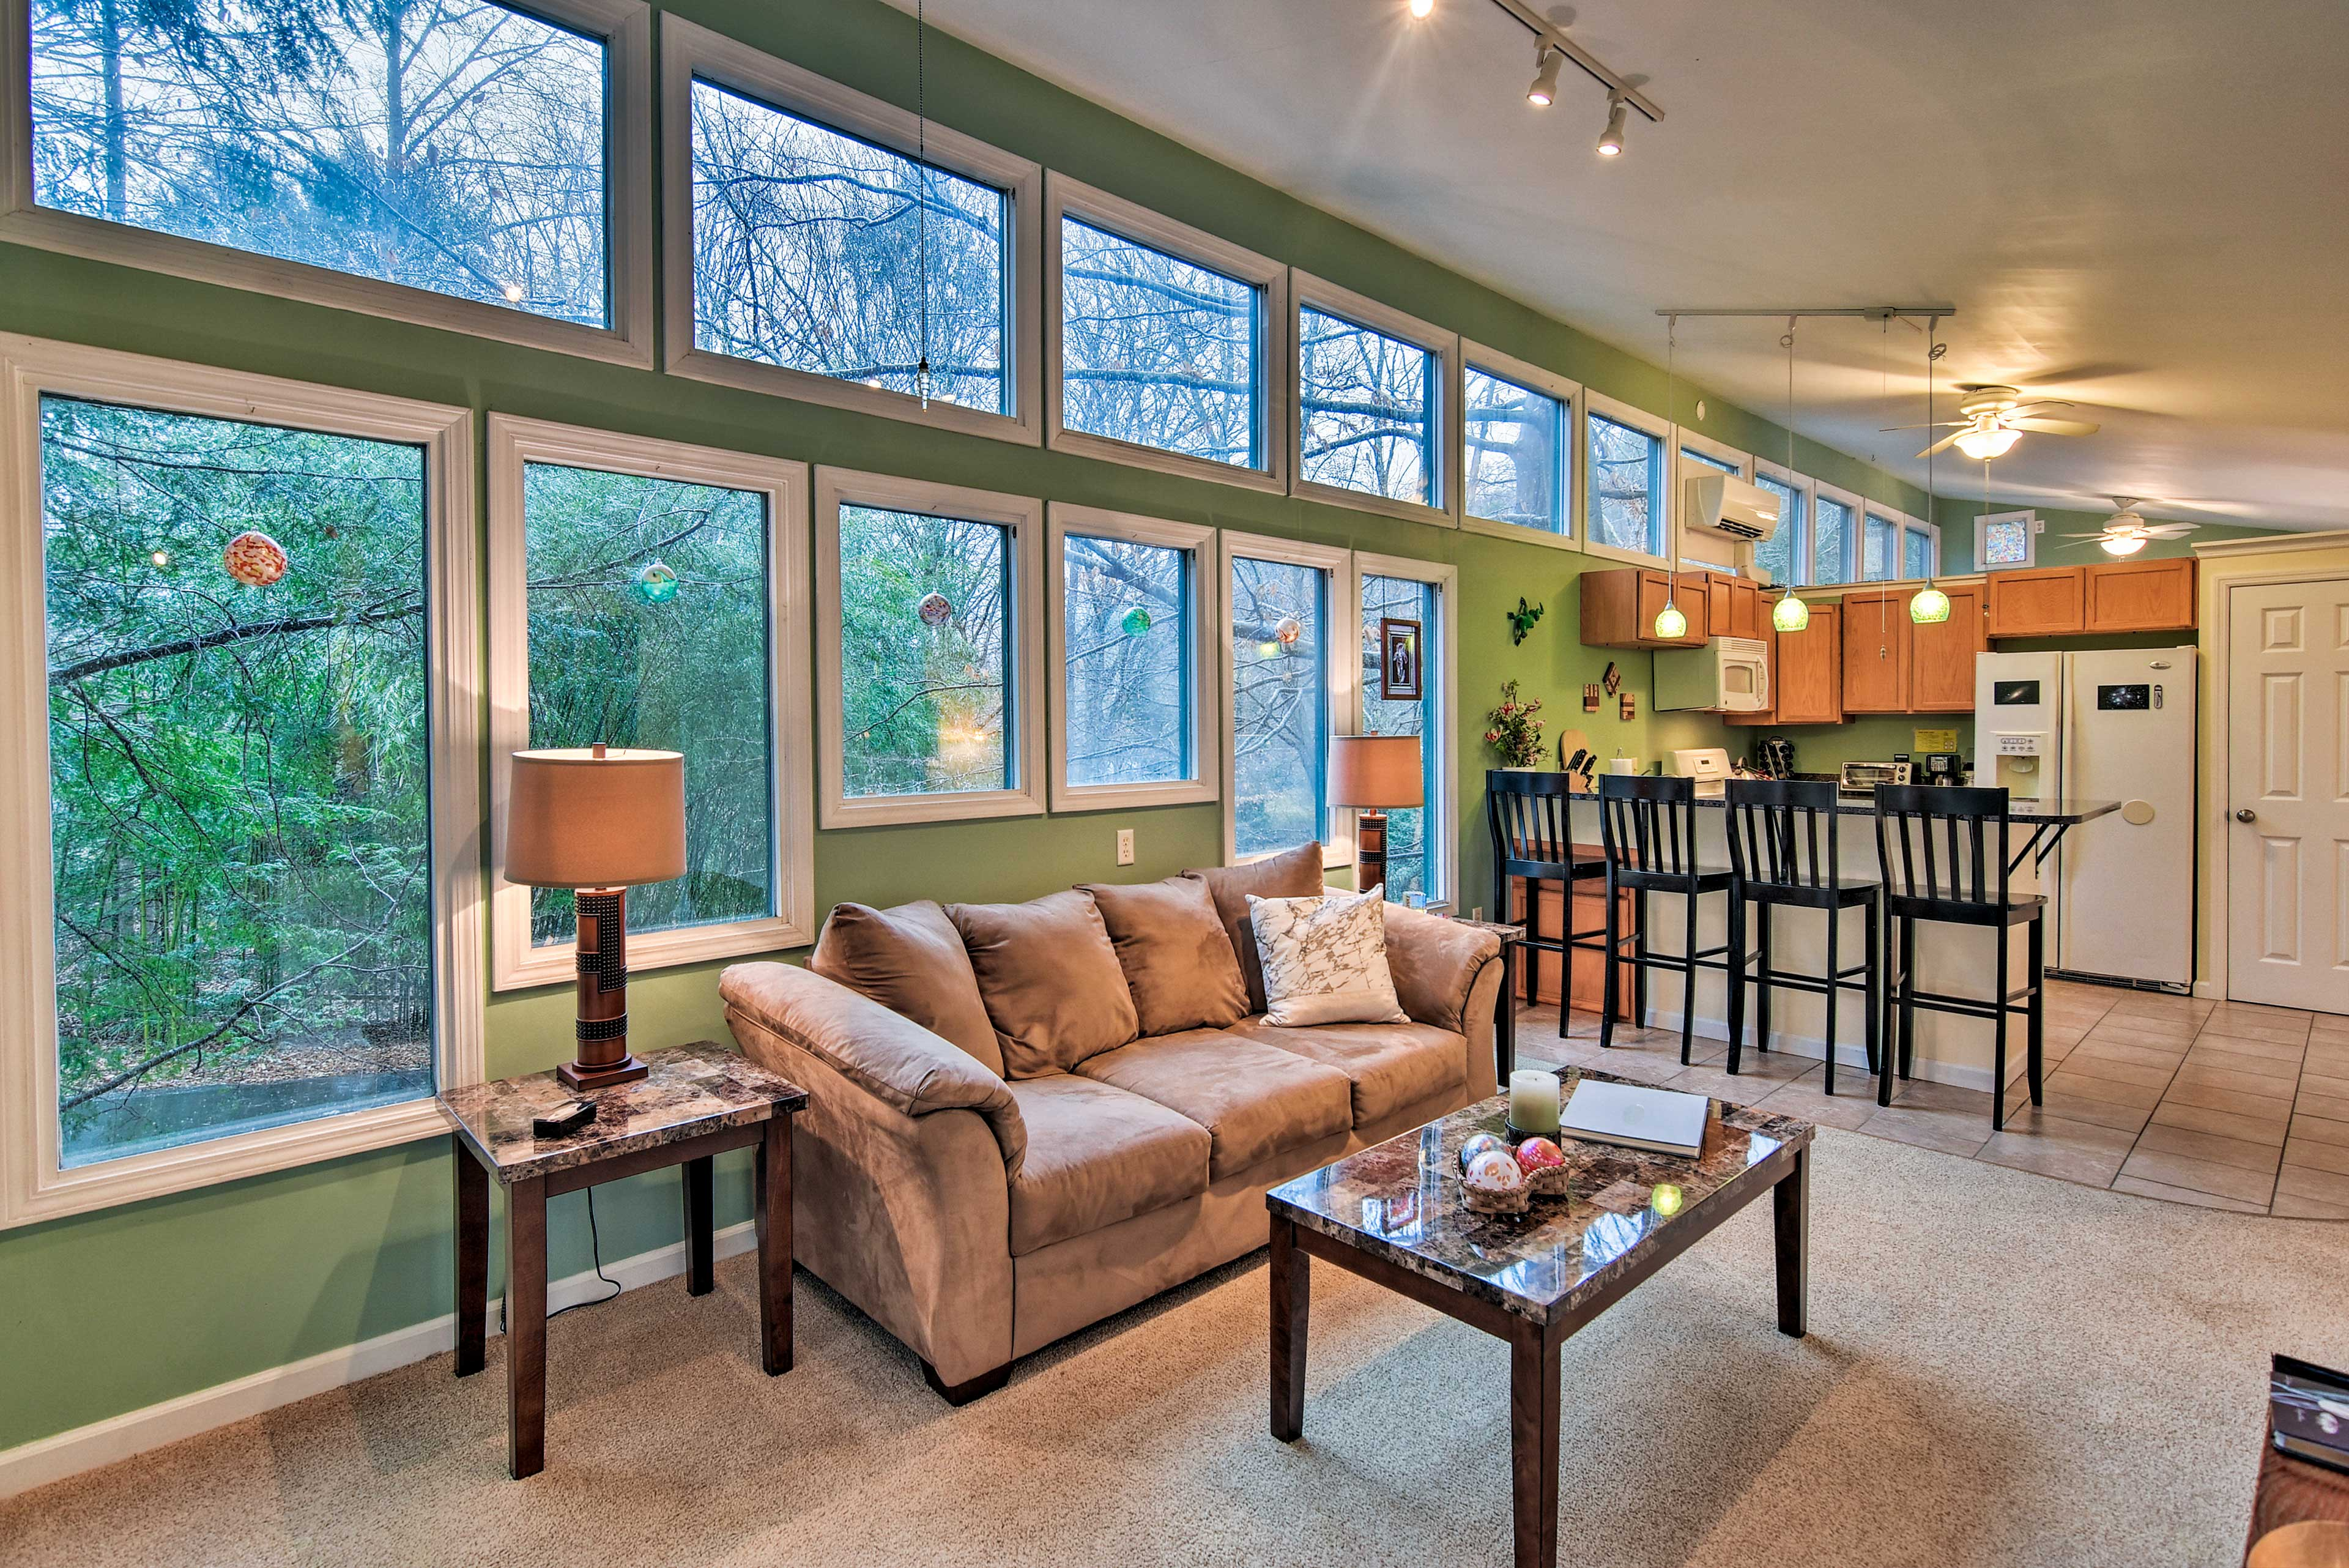 See the Blue Ridge nature right from the apartment with wall-to-wall windows!